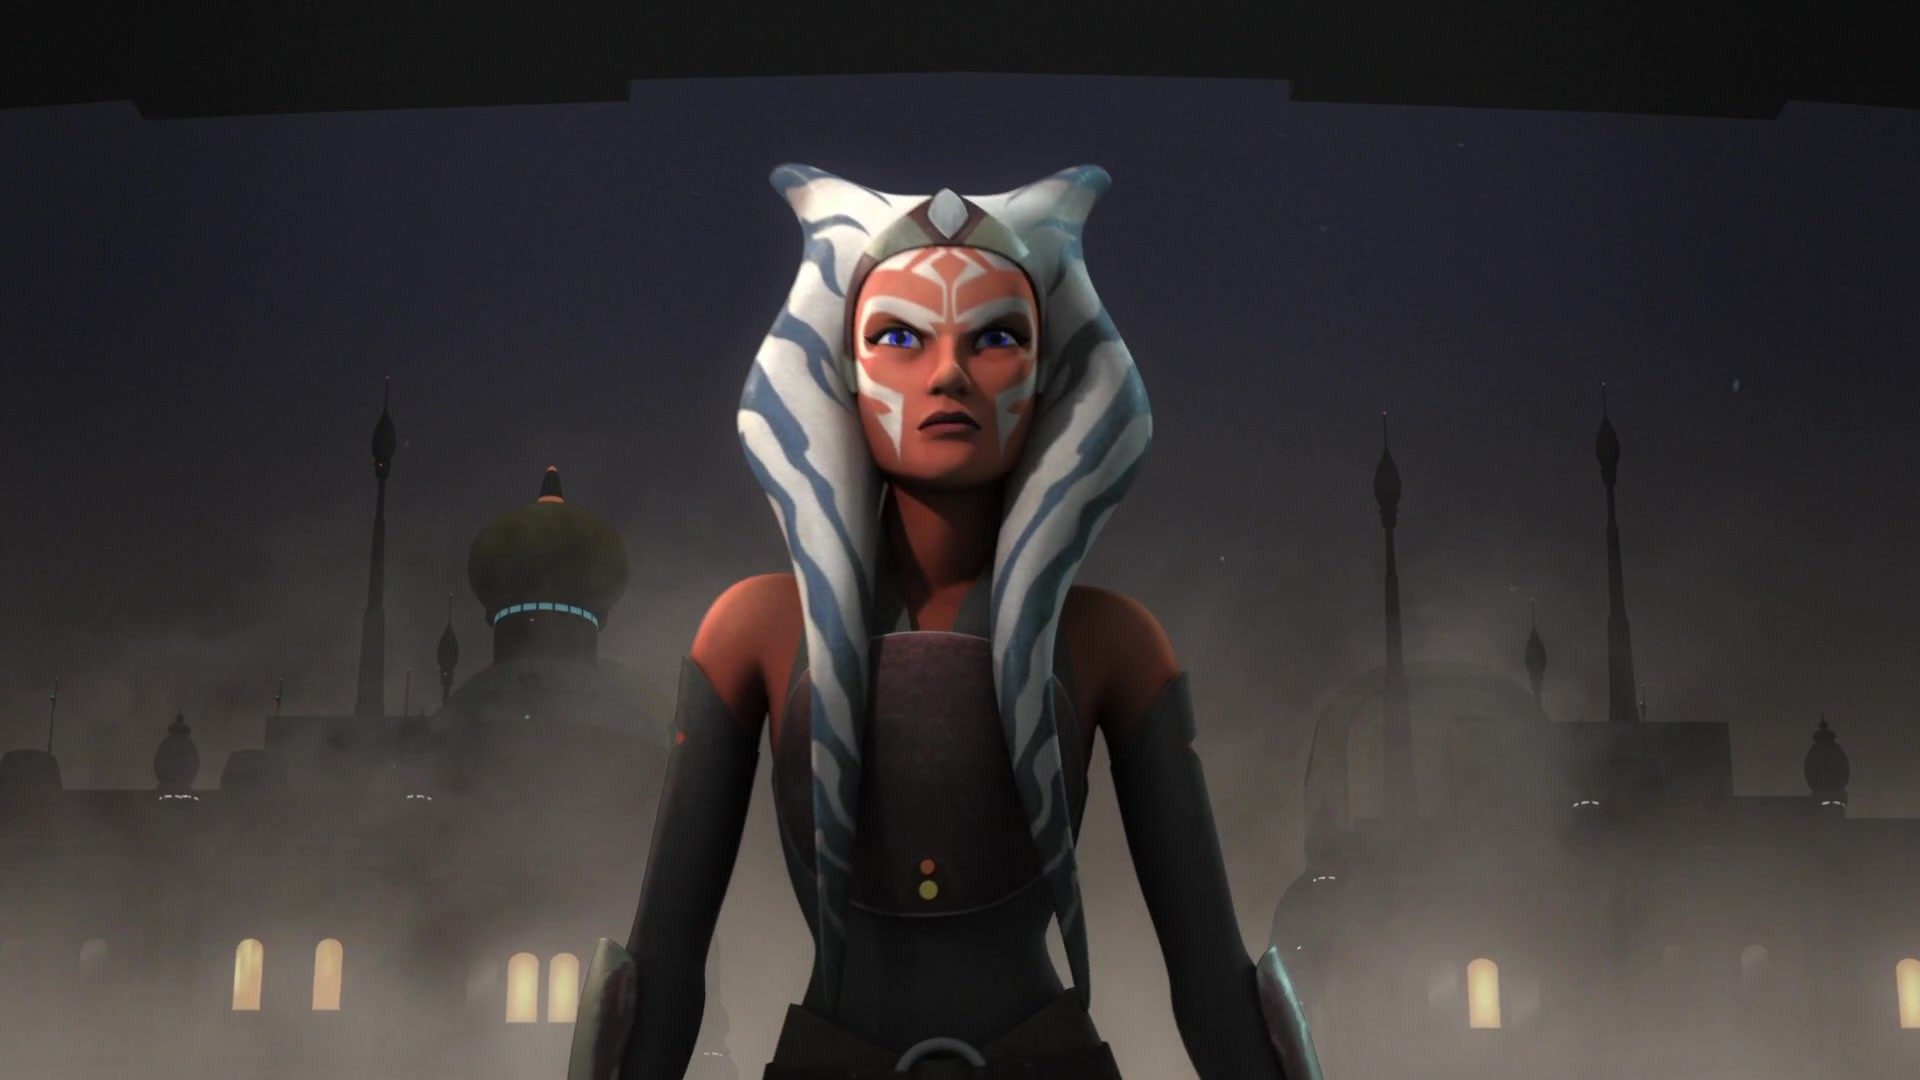 Star Wars Rebels Hd Wallpapers Posted By Zoey Thompson